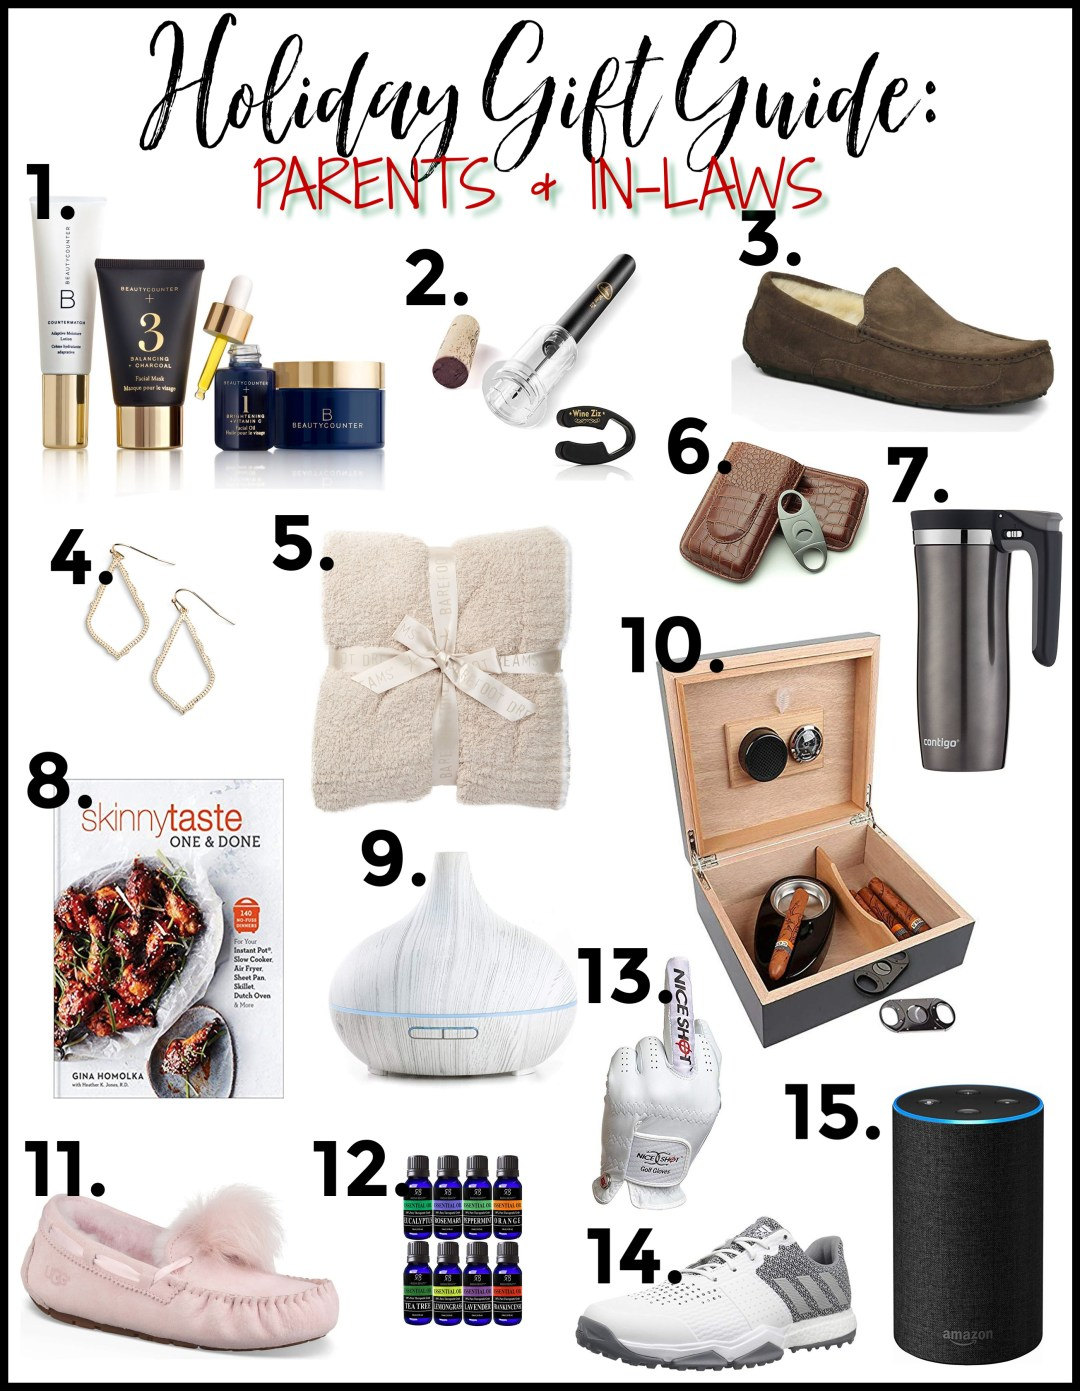 cool gifts for your parents, parents gift guides, holiday gift guide, what to buy in-laws, what to buy parents